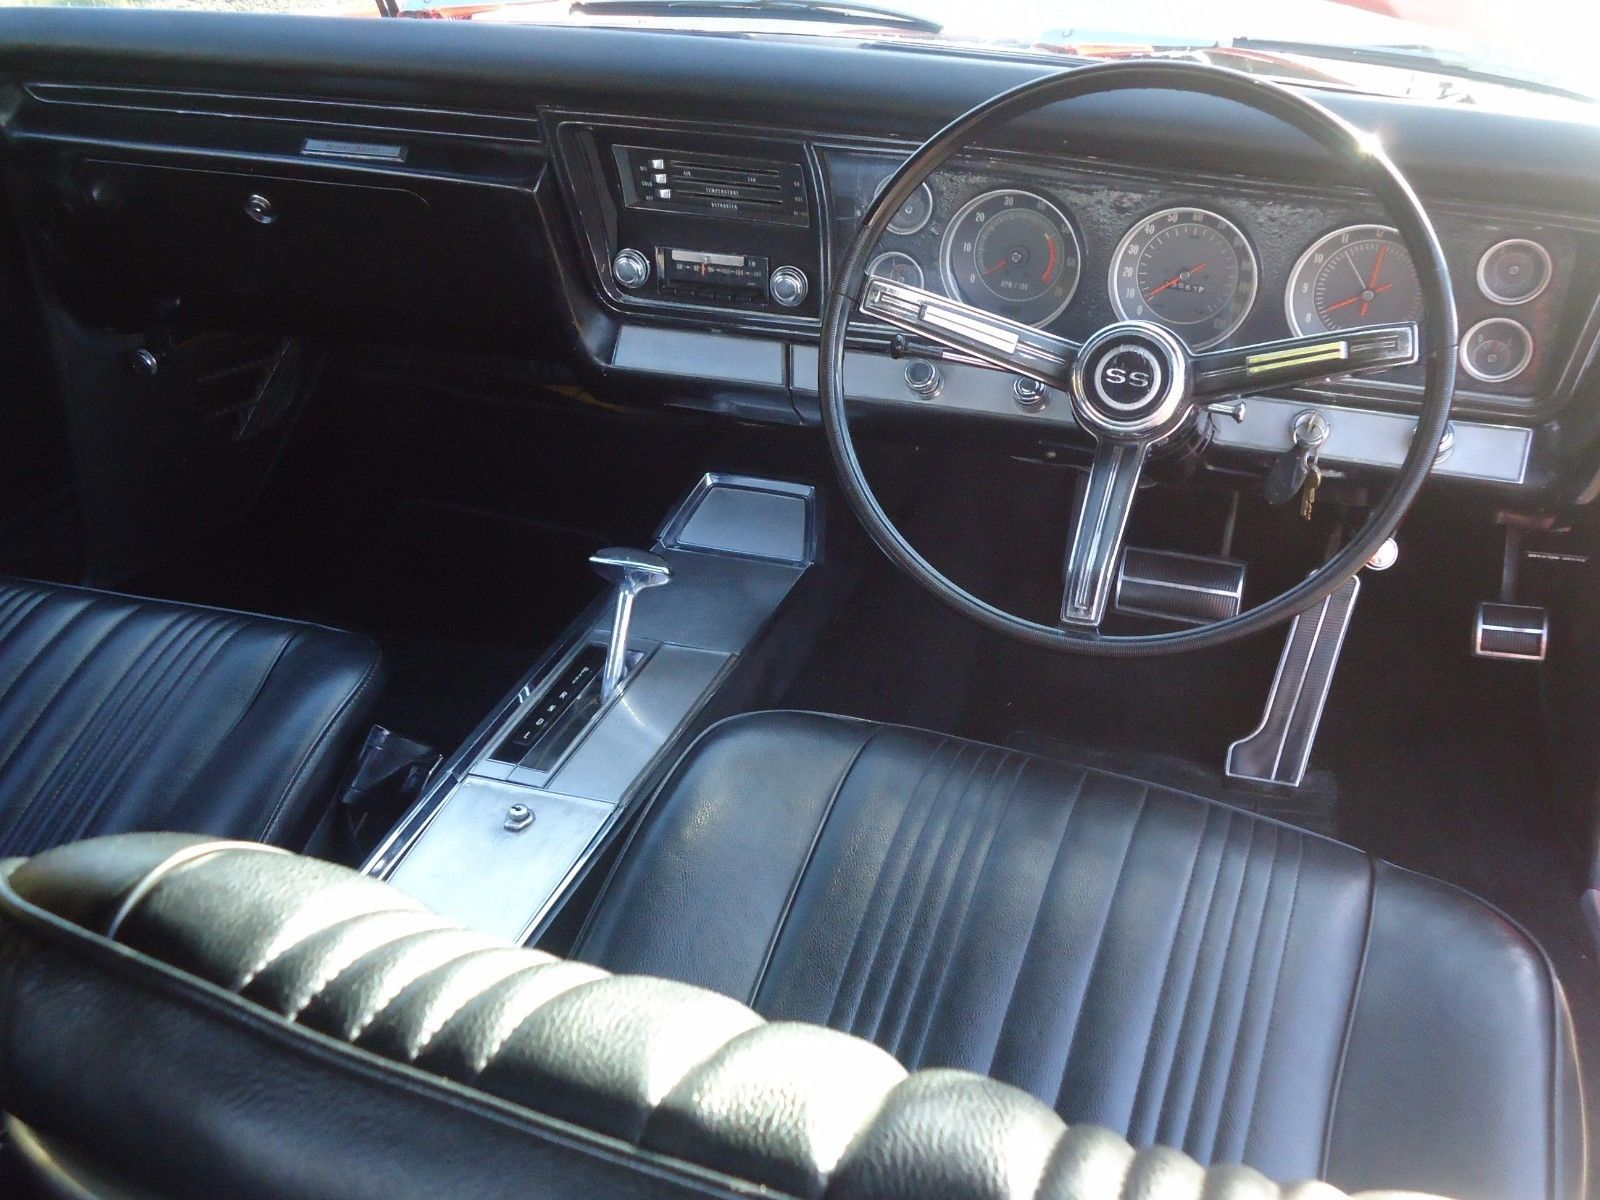 1967 ss chevrolet impala rhd converted dash a lot of work but they look